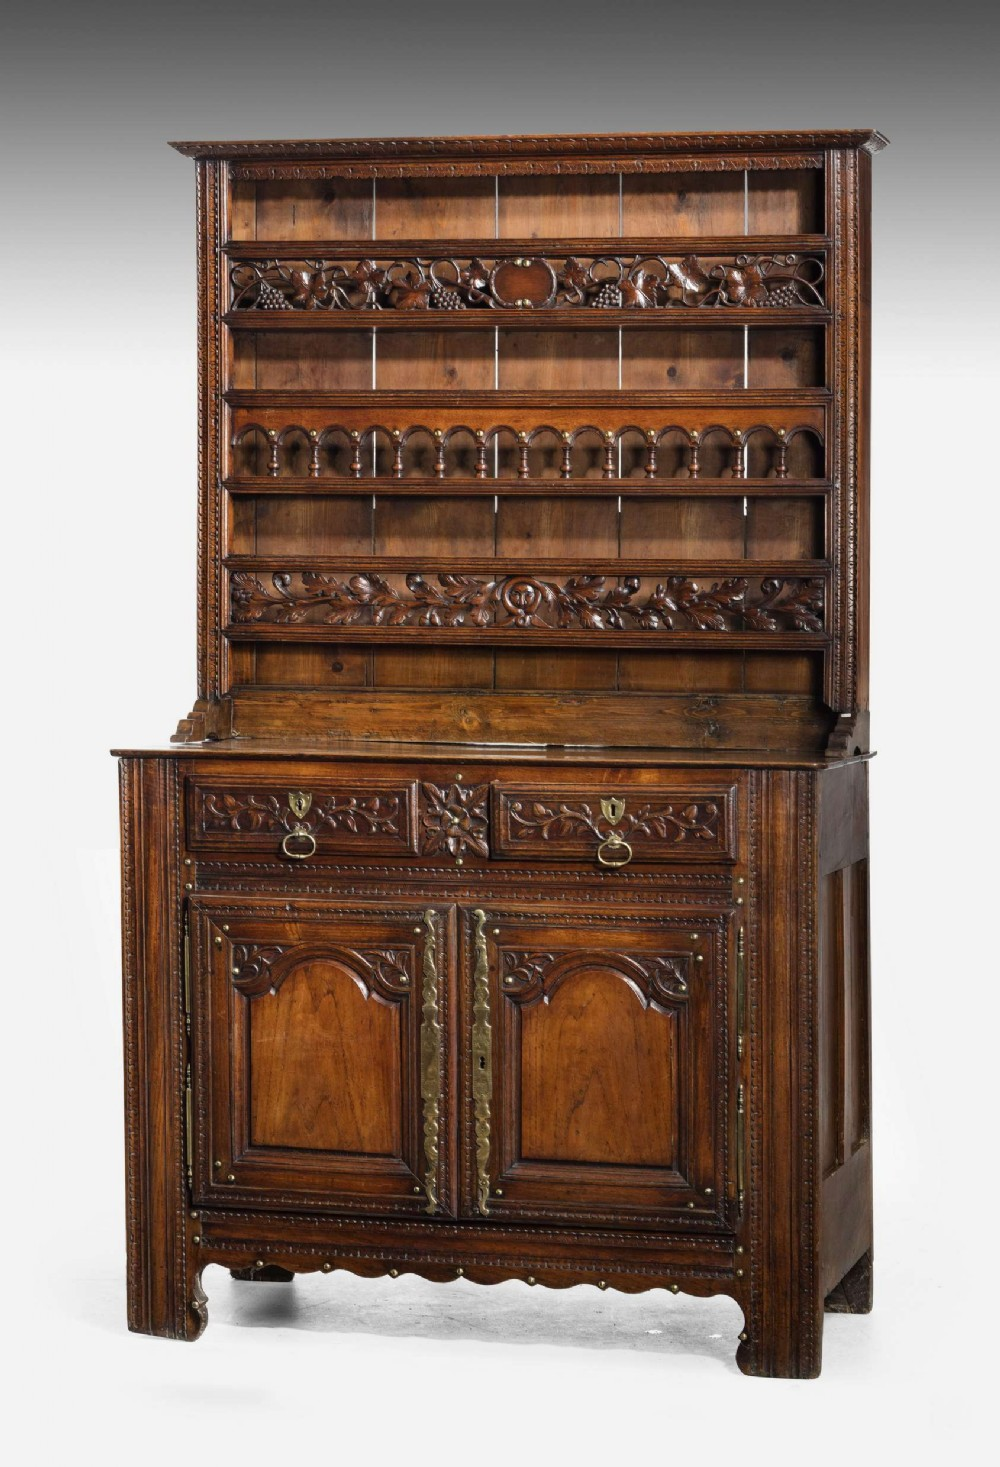 mid 18th century french chestnut dresser and rack